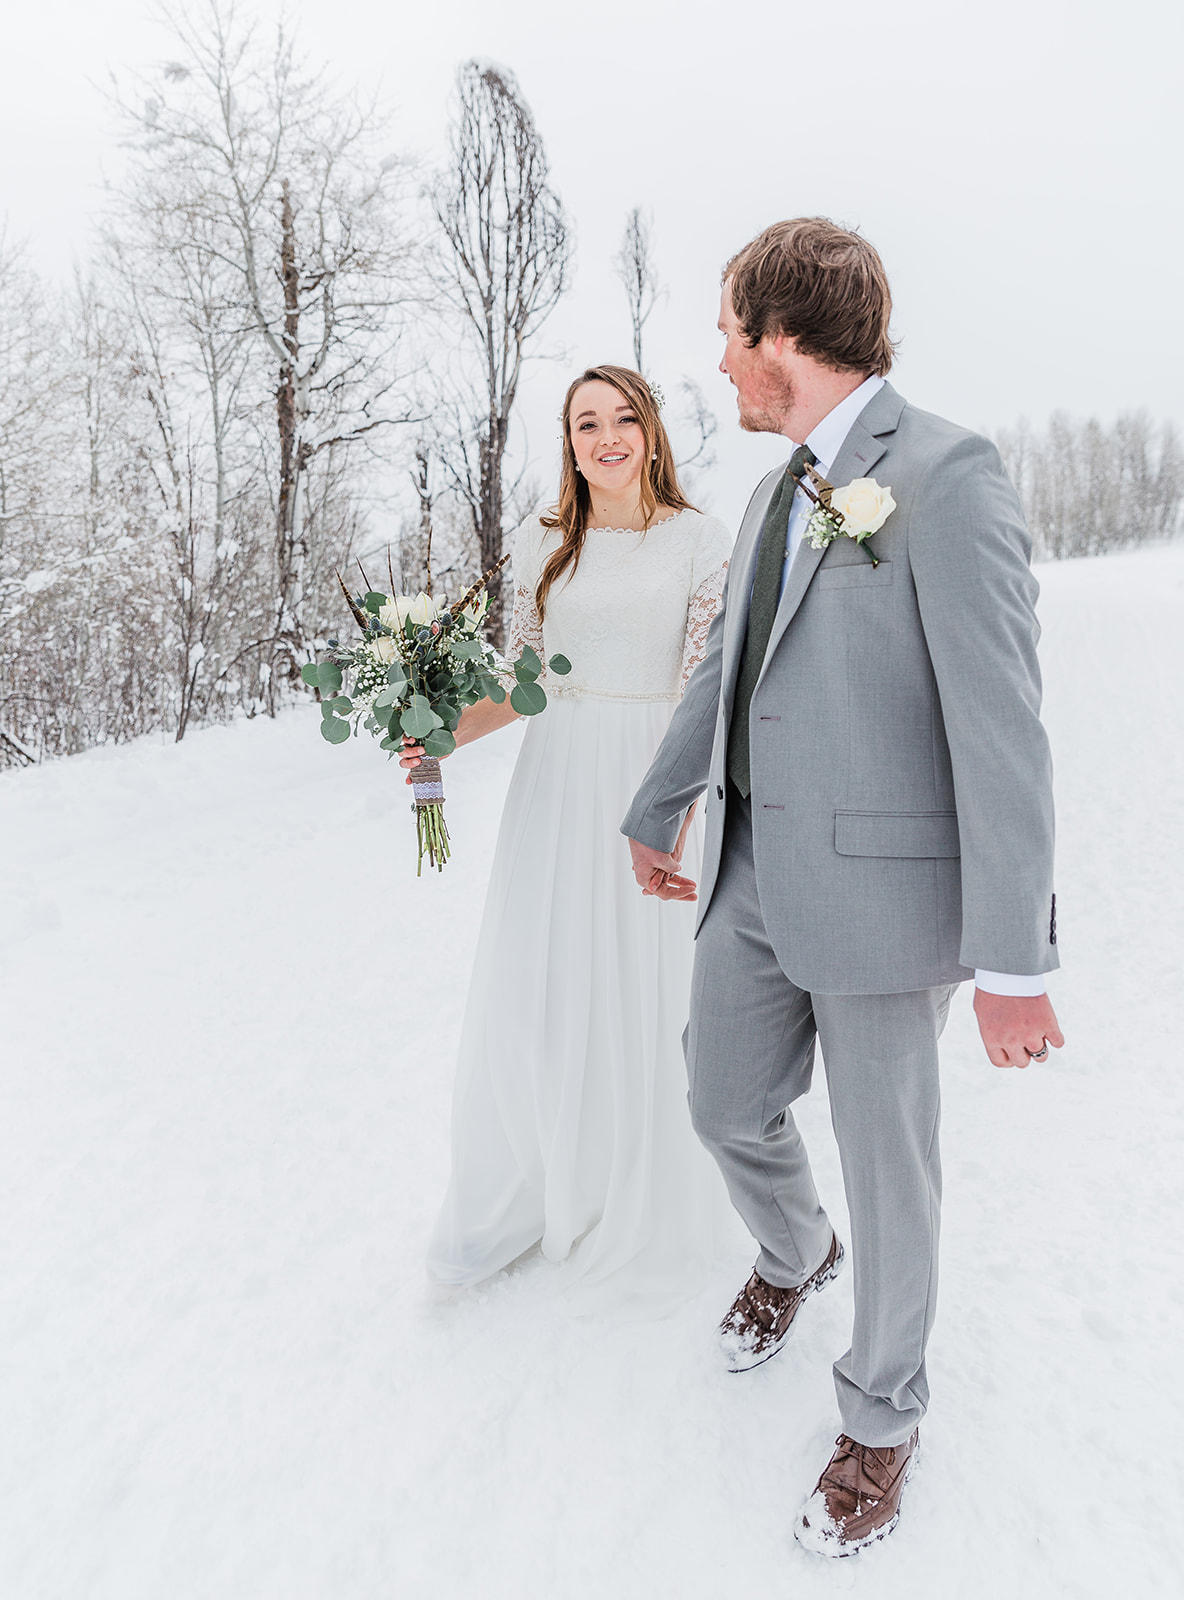 future man and wife walking hand in hand through the snow beautiful winter day walking through tony's grove in cache valley utah utah picture locations beautiful grove rustic country wedding everything covered in snow inspiration for wedding pictures #winterwedding #formals #tony'sgrove #cachevalley #snowcoveredtrees #bellaalderphotography #professionalphotographer #winterwonderland #couplegoals #weddingattire